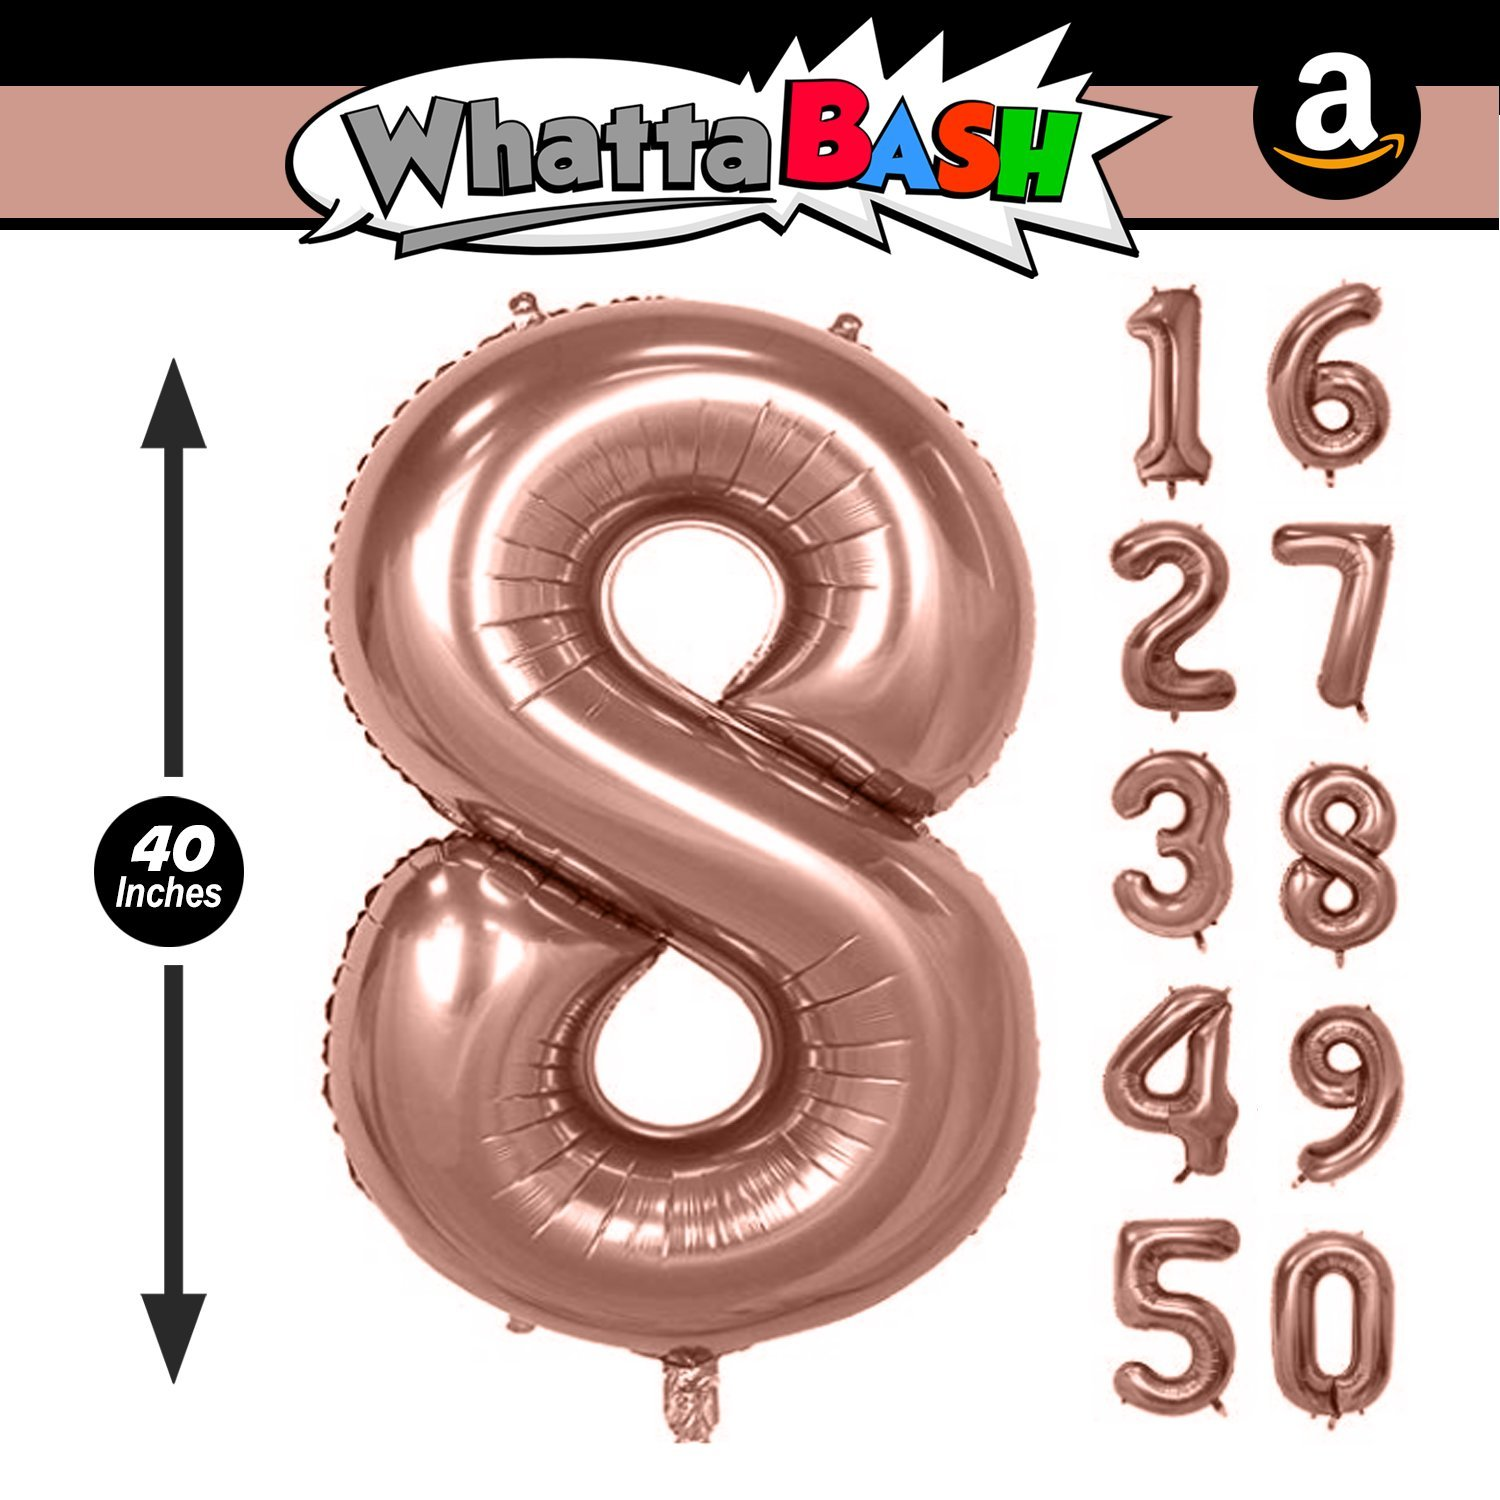 Rose Gold Number 8 40 Inch Rose Gold Jumbo Number 8 Eight Balloon Giant Large Balloons Foil Decorations Supplies For Birthday Party Wedding Shower Anniversary Engagement Photo Shoot Gift Accessories